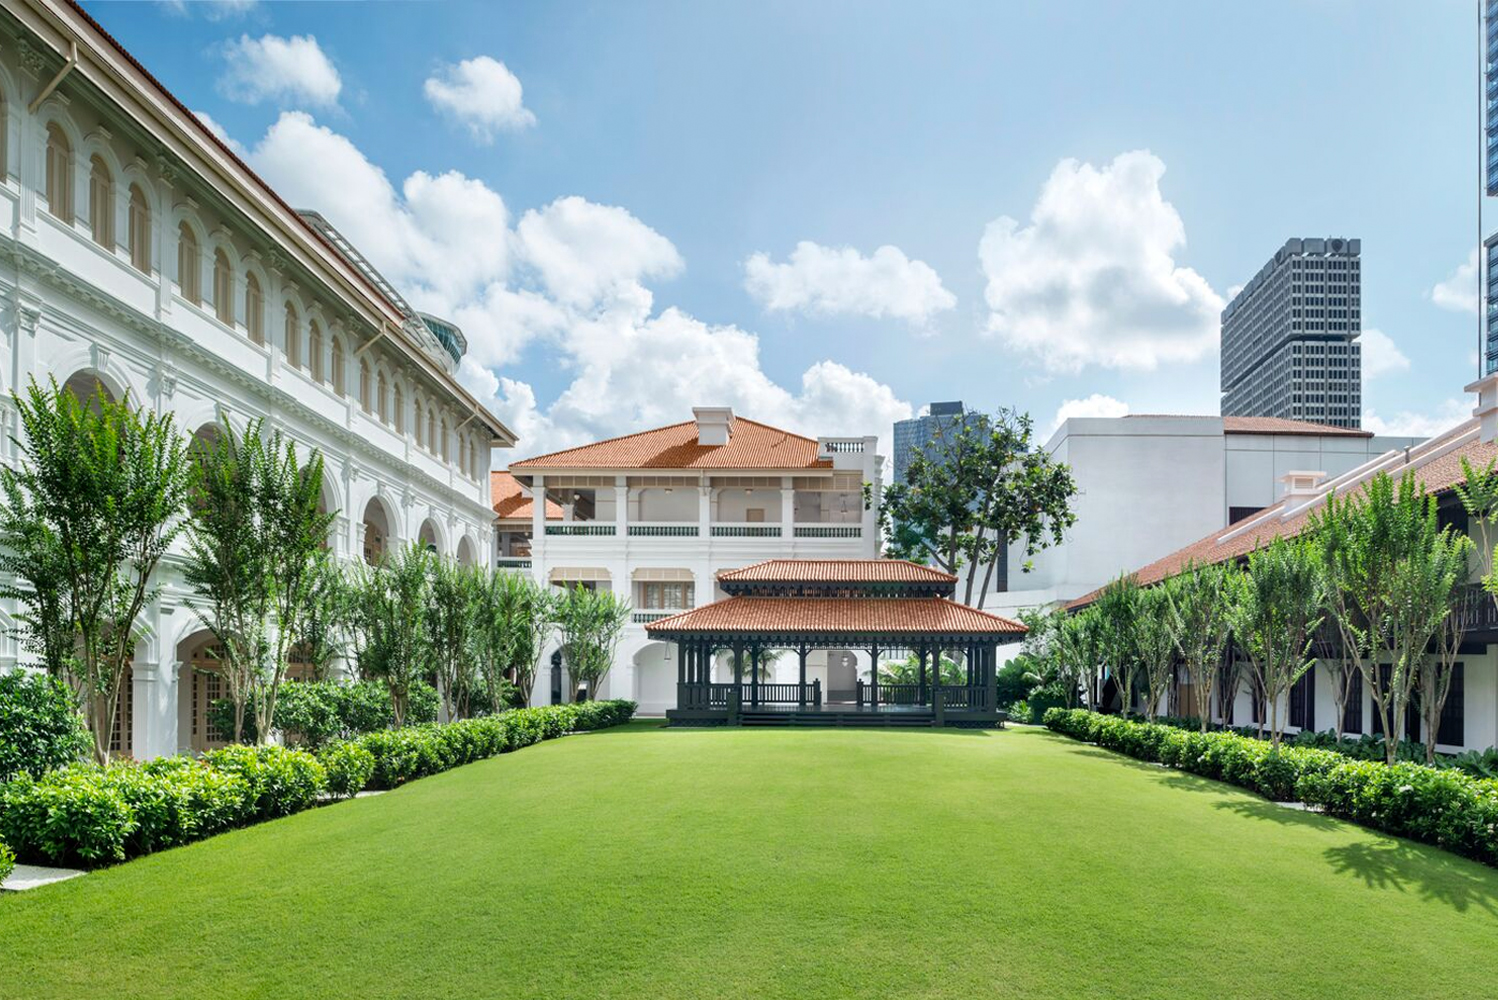 First opened in 1887, Raffles Singapore was declared a National Monument a century later by the Singapore Government in 1987.